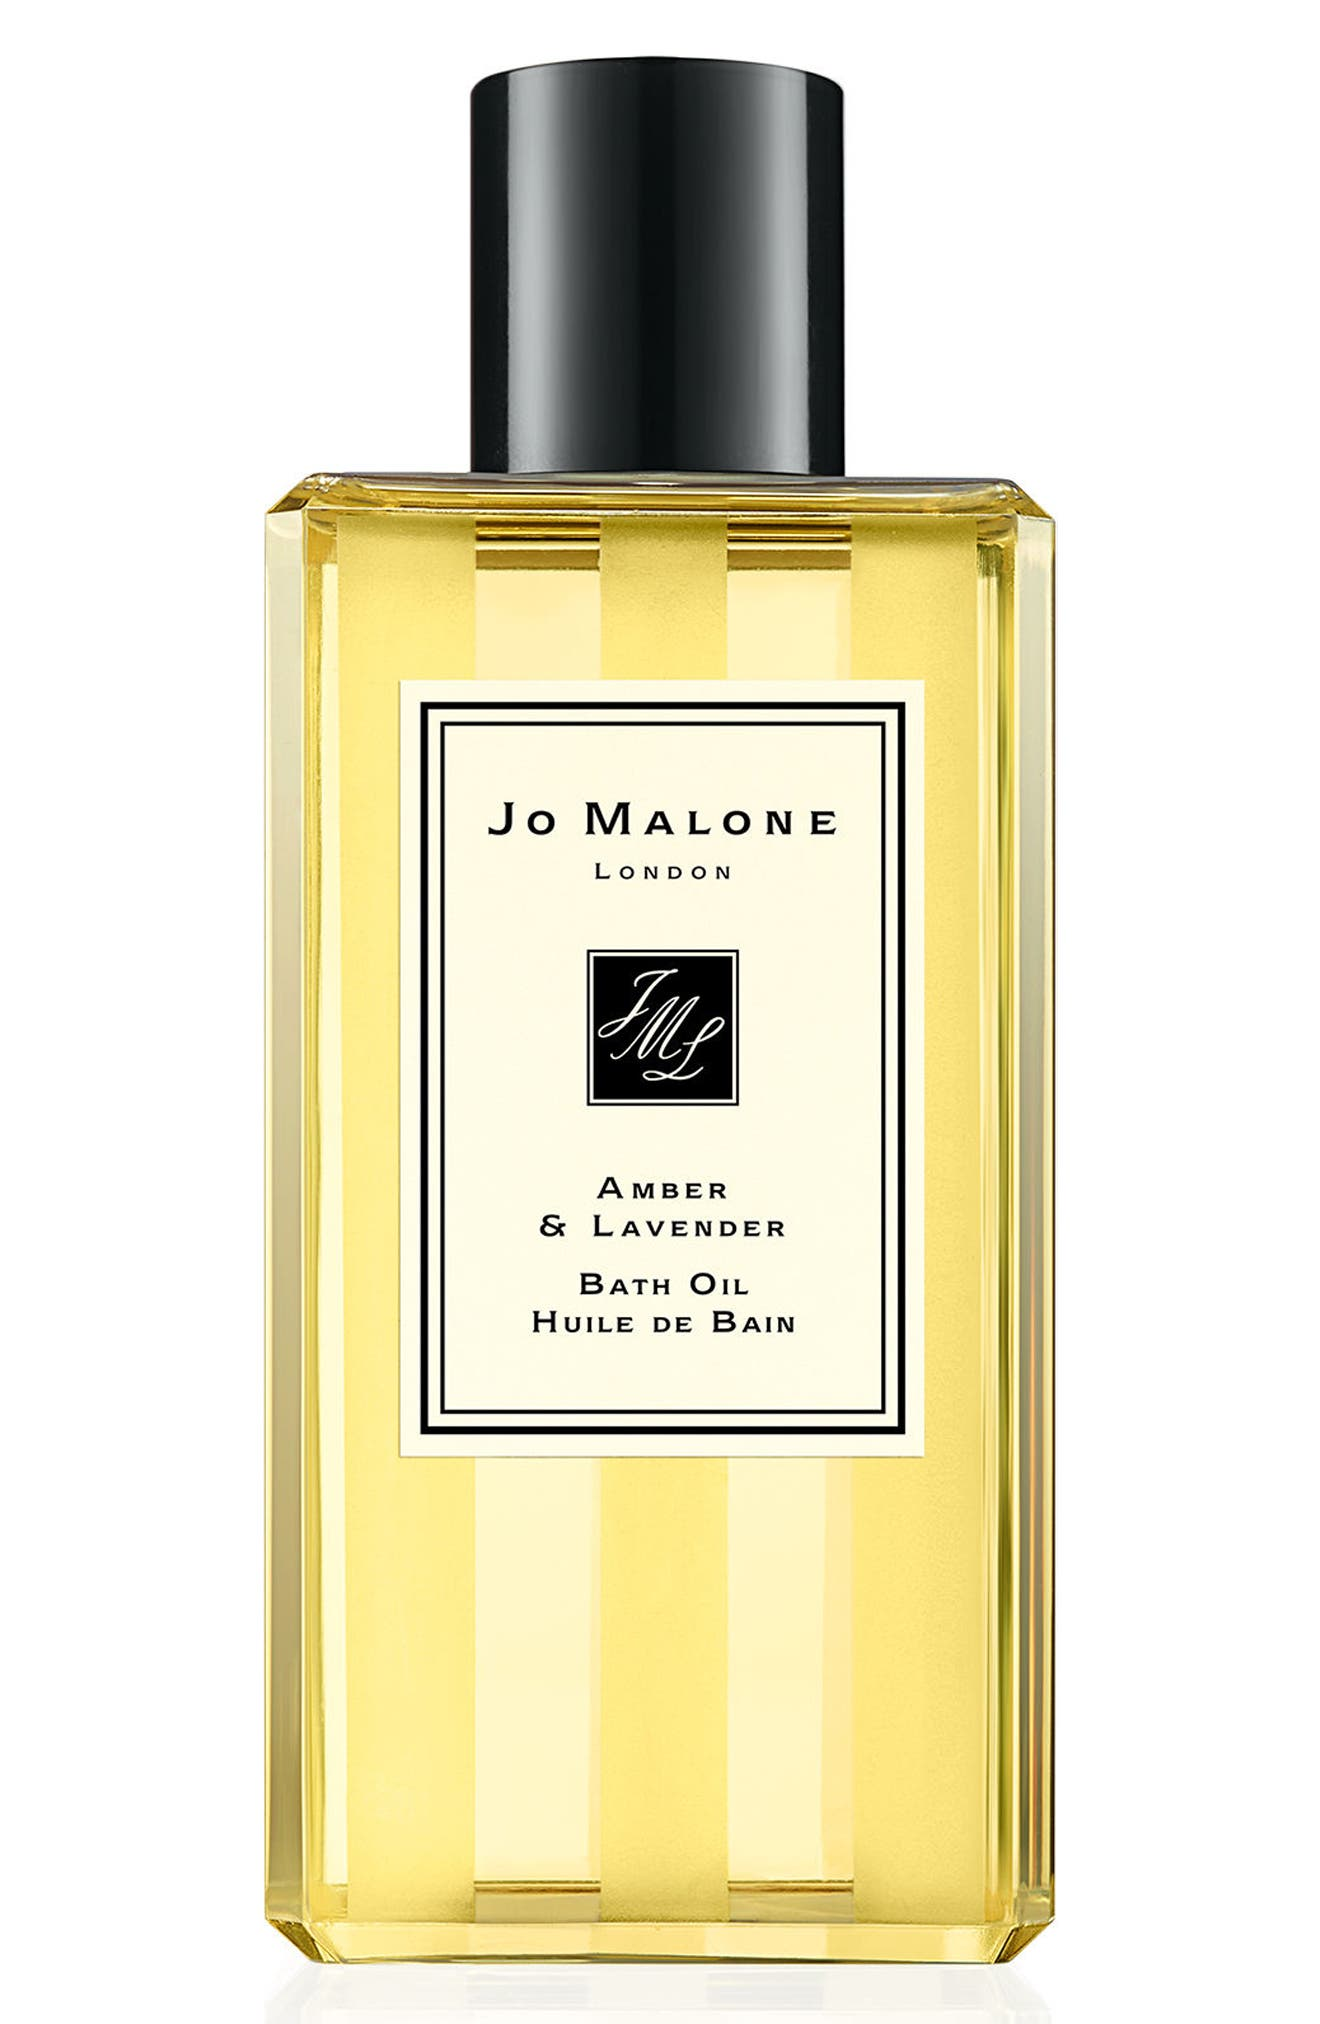 JO MALONE LONDON™ 'Amber & Lavender' Bath Oil